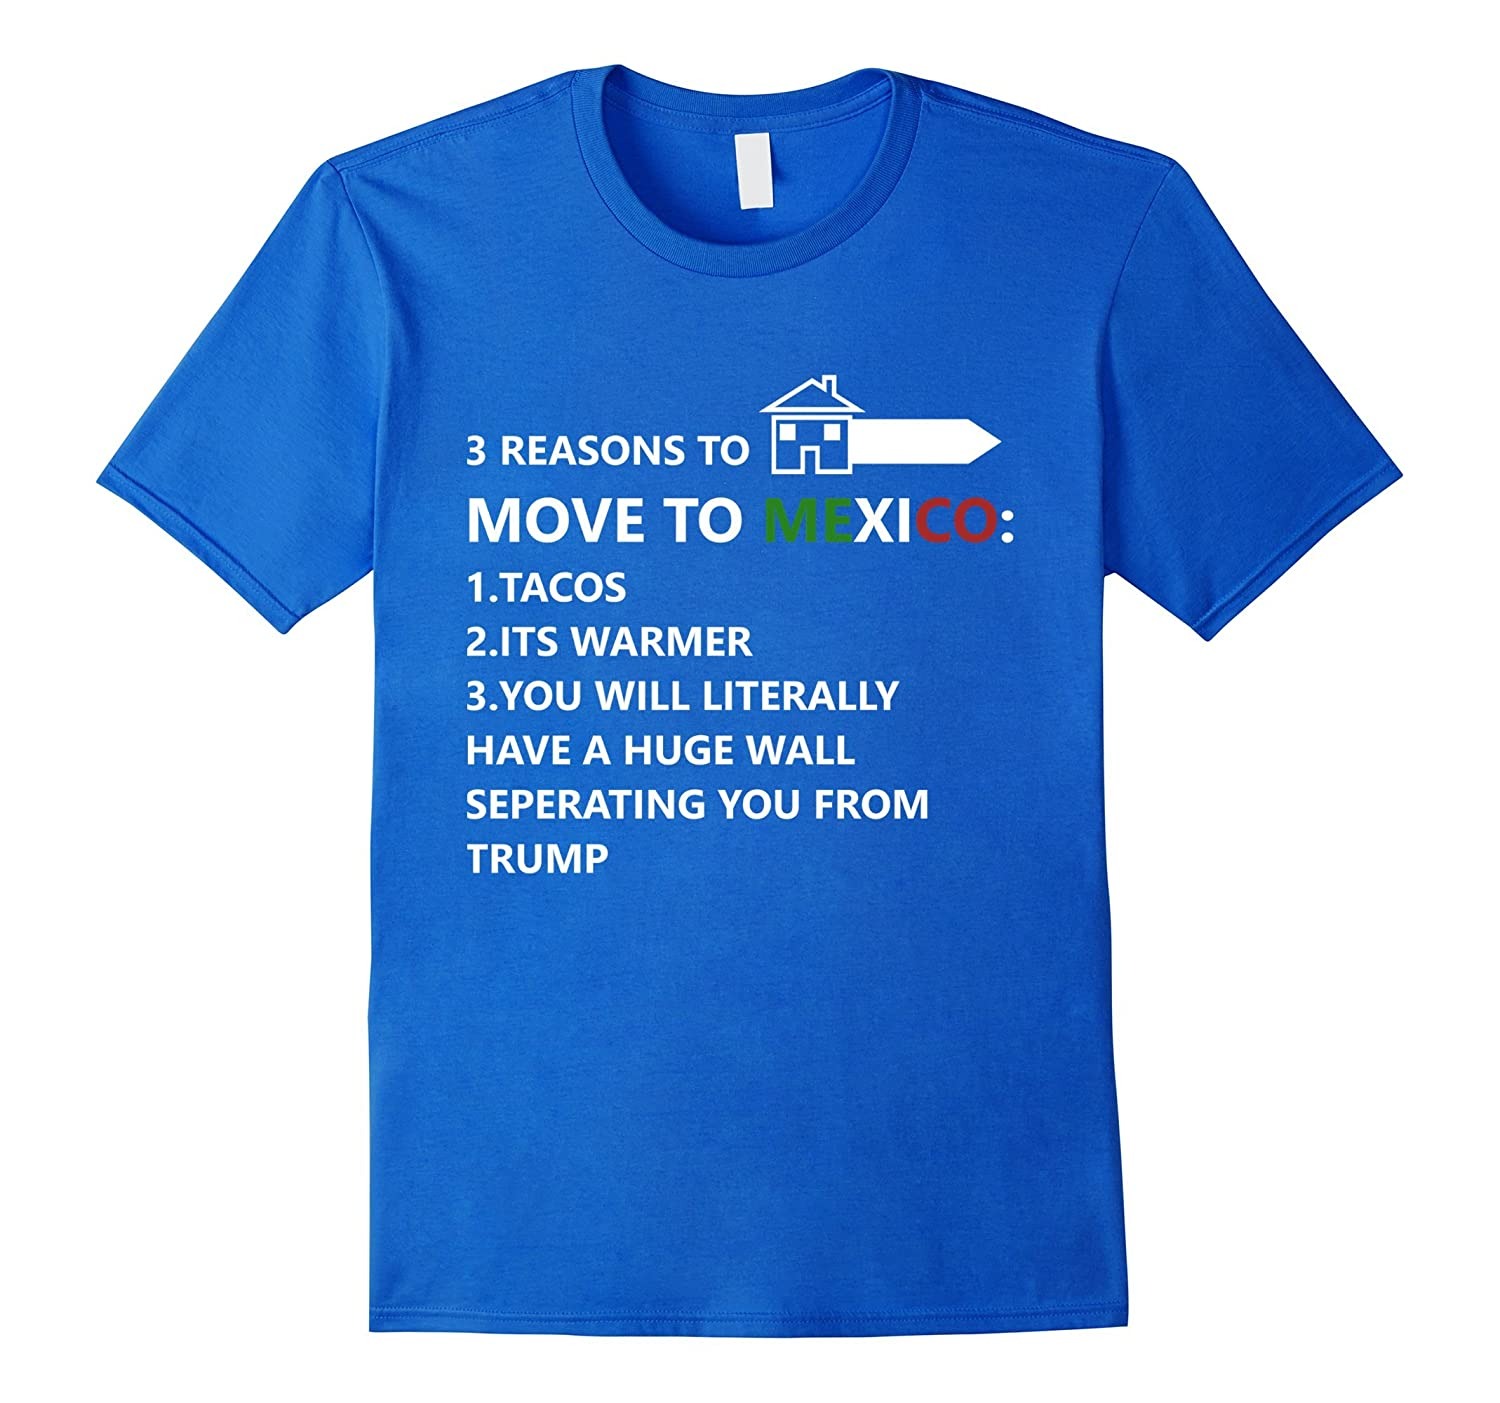 d3f6f0b1f7 3 reasons to move to Mexico funny Anti Trump T-Shirt-CD – Canditee